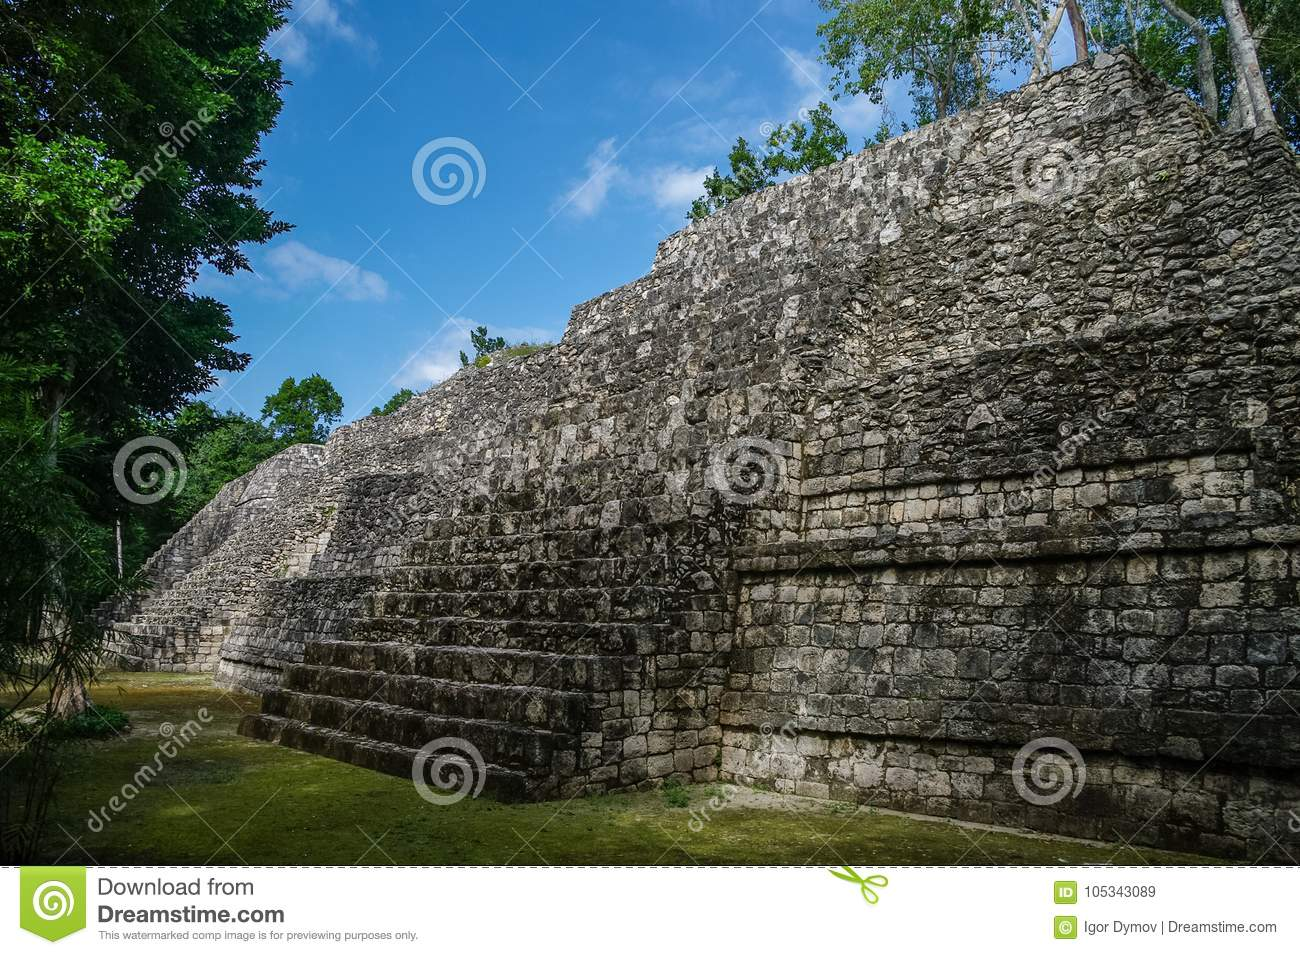 Sight of the Mayan pyramid in ruins in the archaeological Balamku enclosure in the reservation of the biosphere of Calakmul, Camp